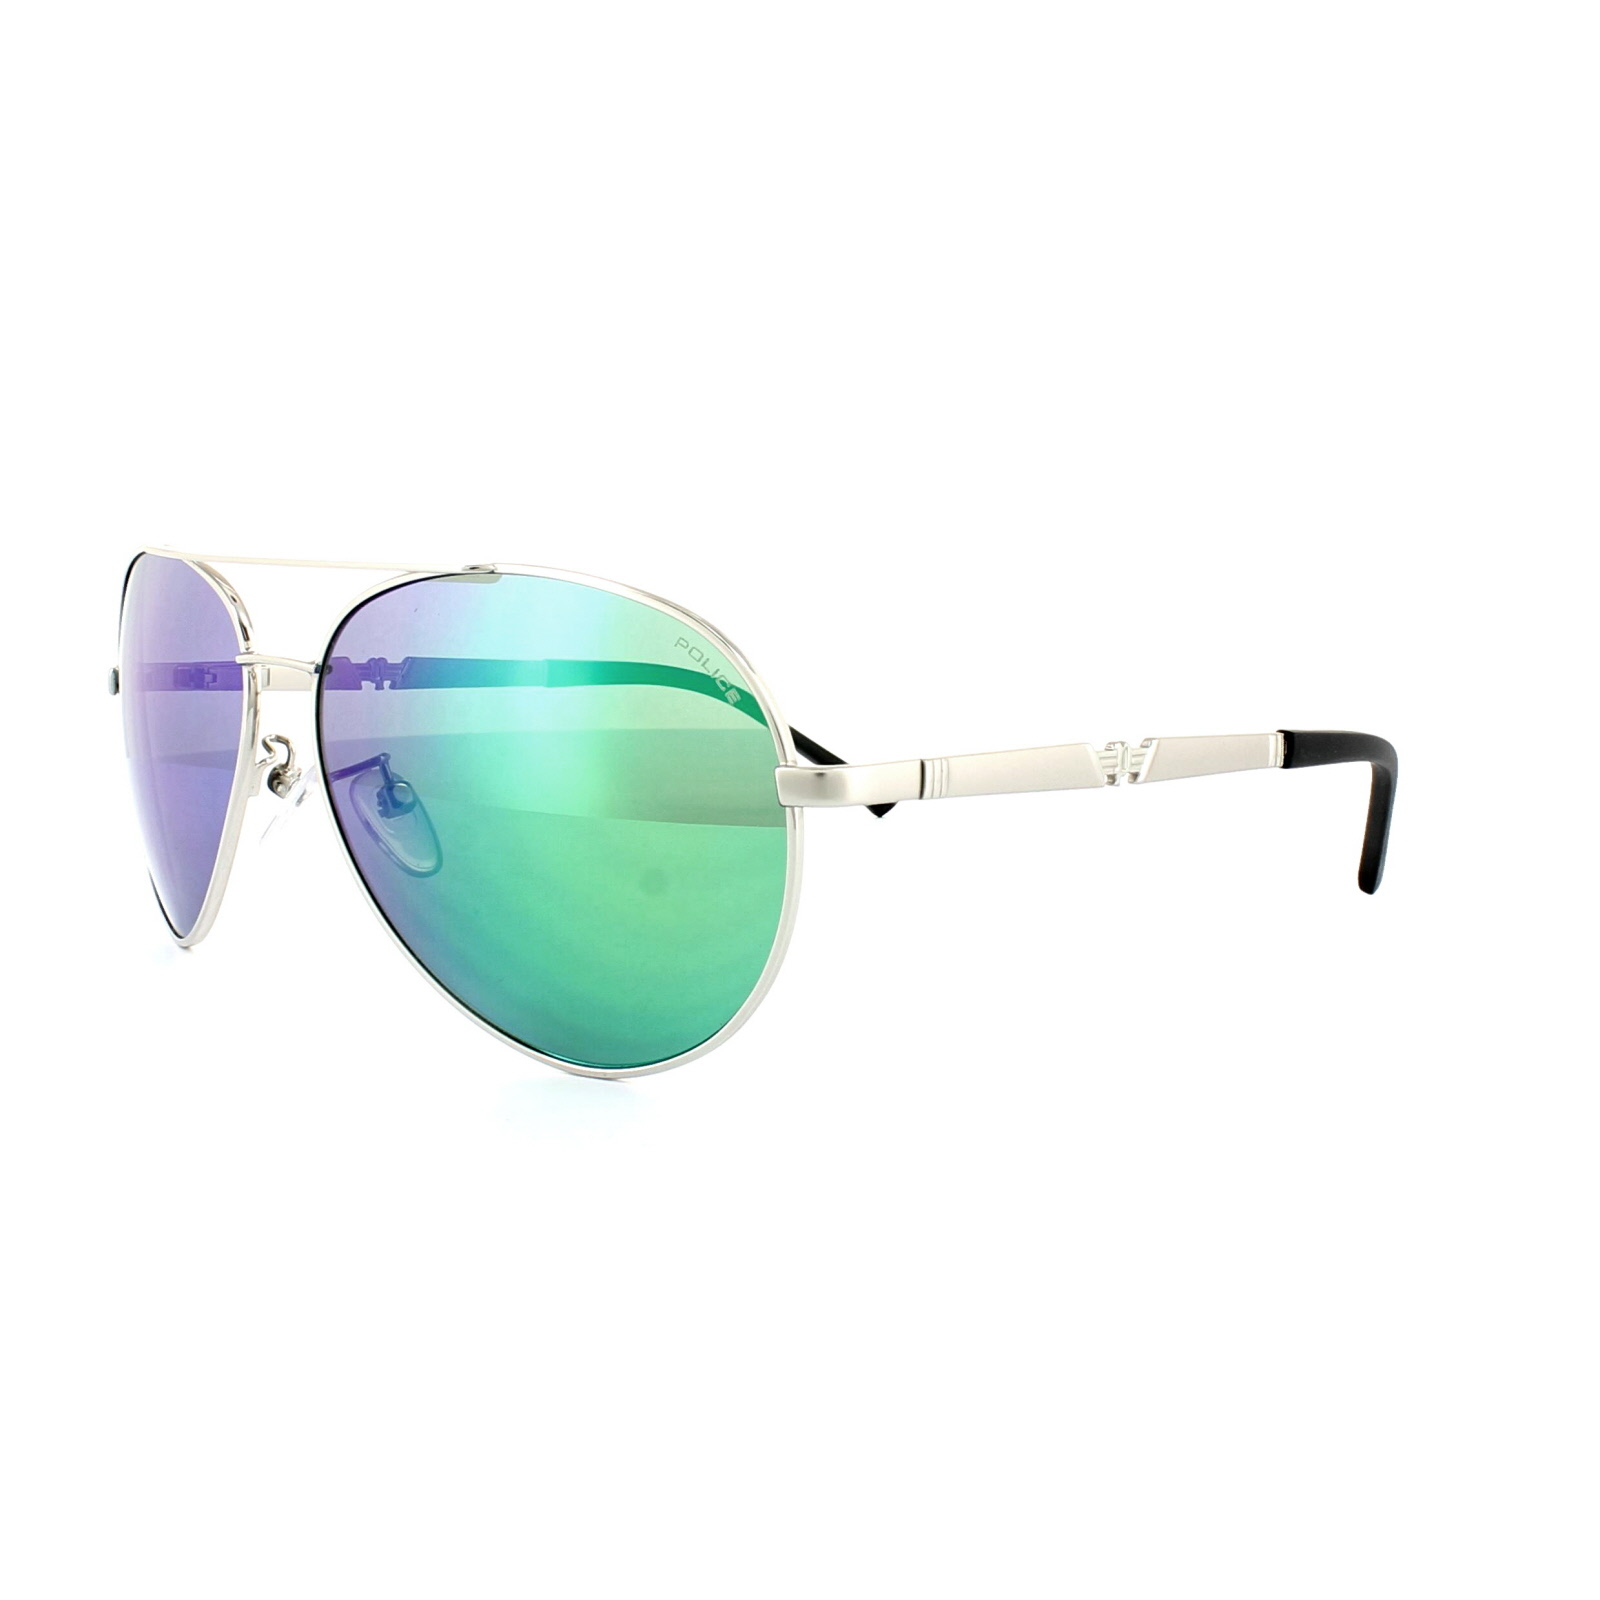 f91d542ca2 Details about Police Sunglasses Legend 2 8746 589G Silver Emerald Mirror